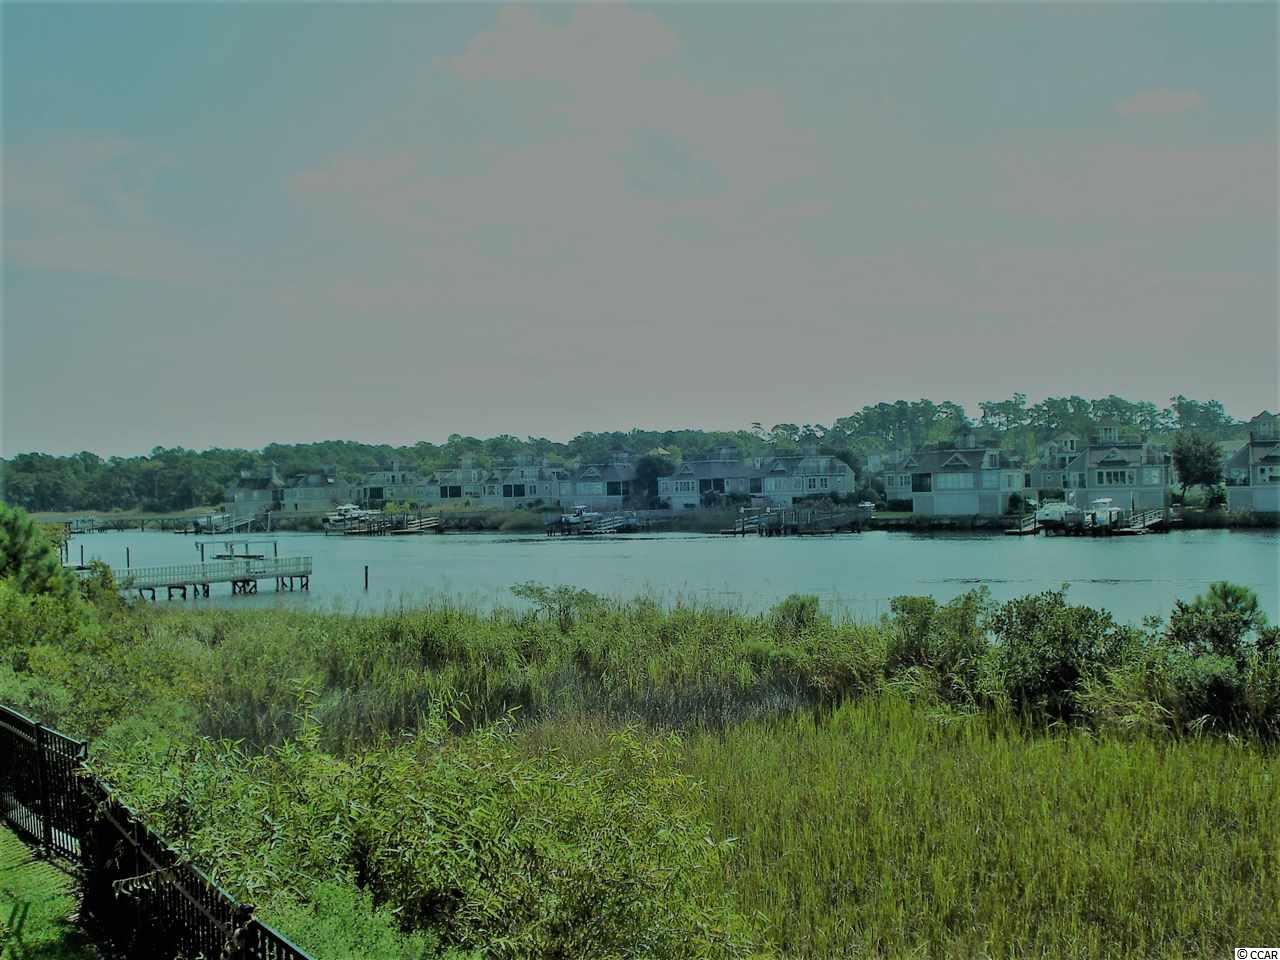 This 2 bedroom condo at  SPINNAKER COVE is currently for sale